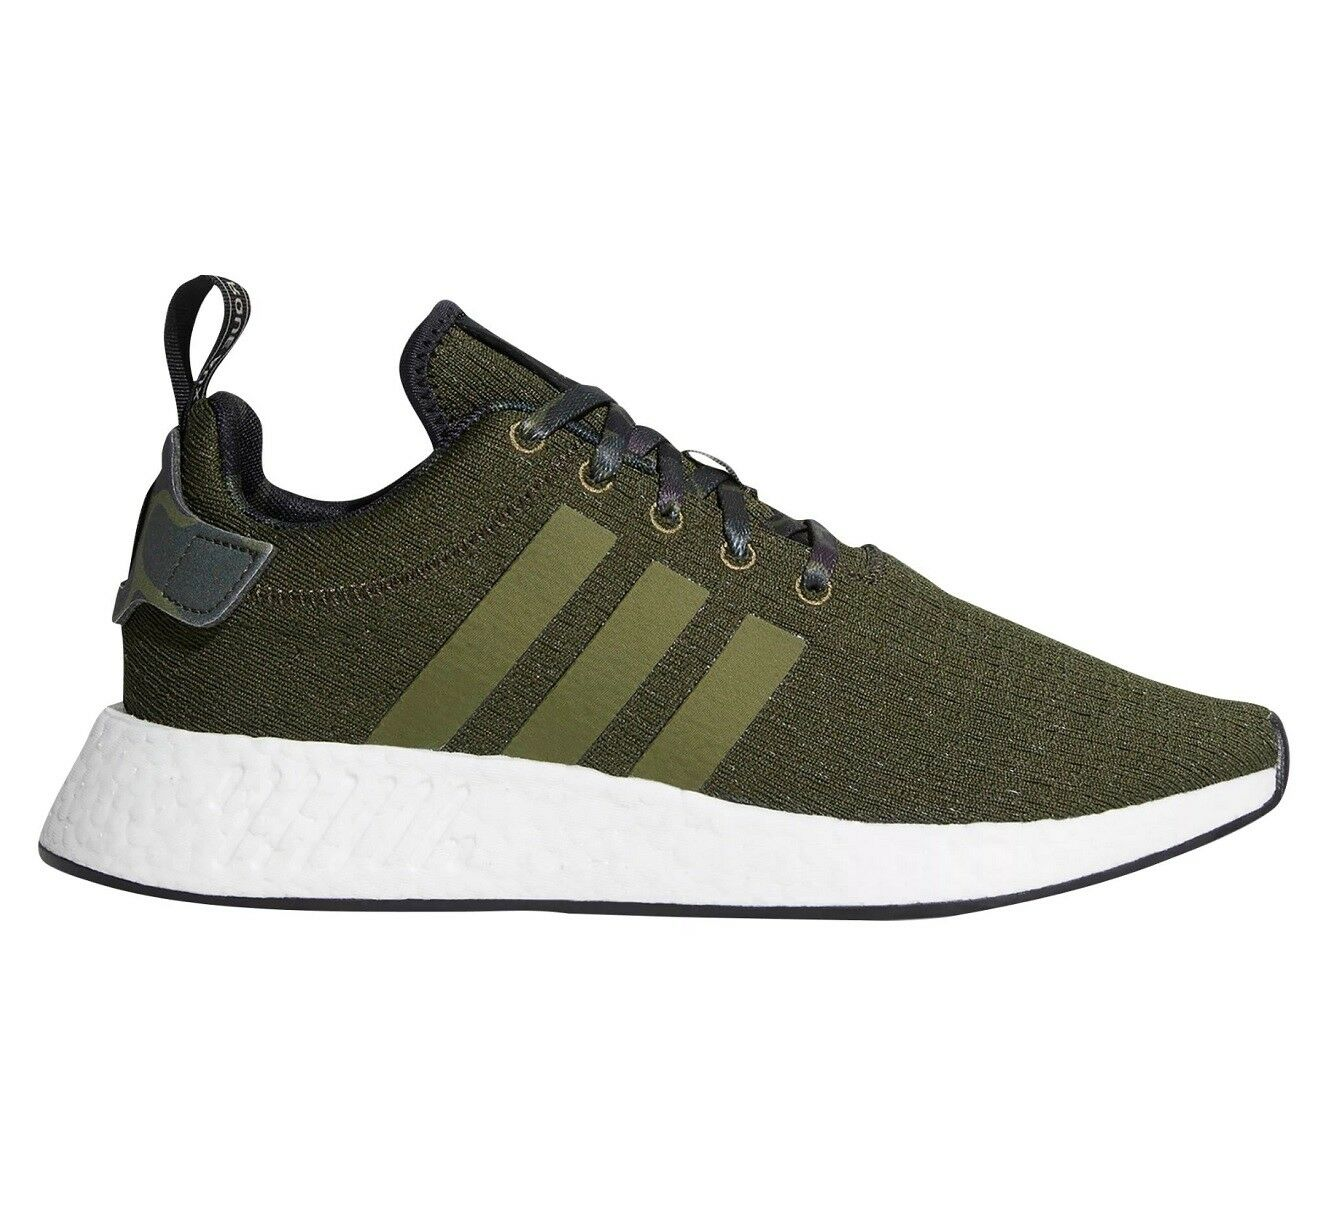 Adidas NMD R2 Mens B22630 Olive Cargo Green Boost Knit Athletic Shoes Comfortable